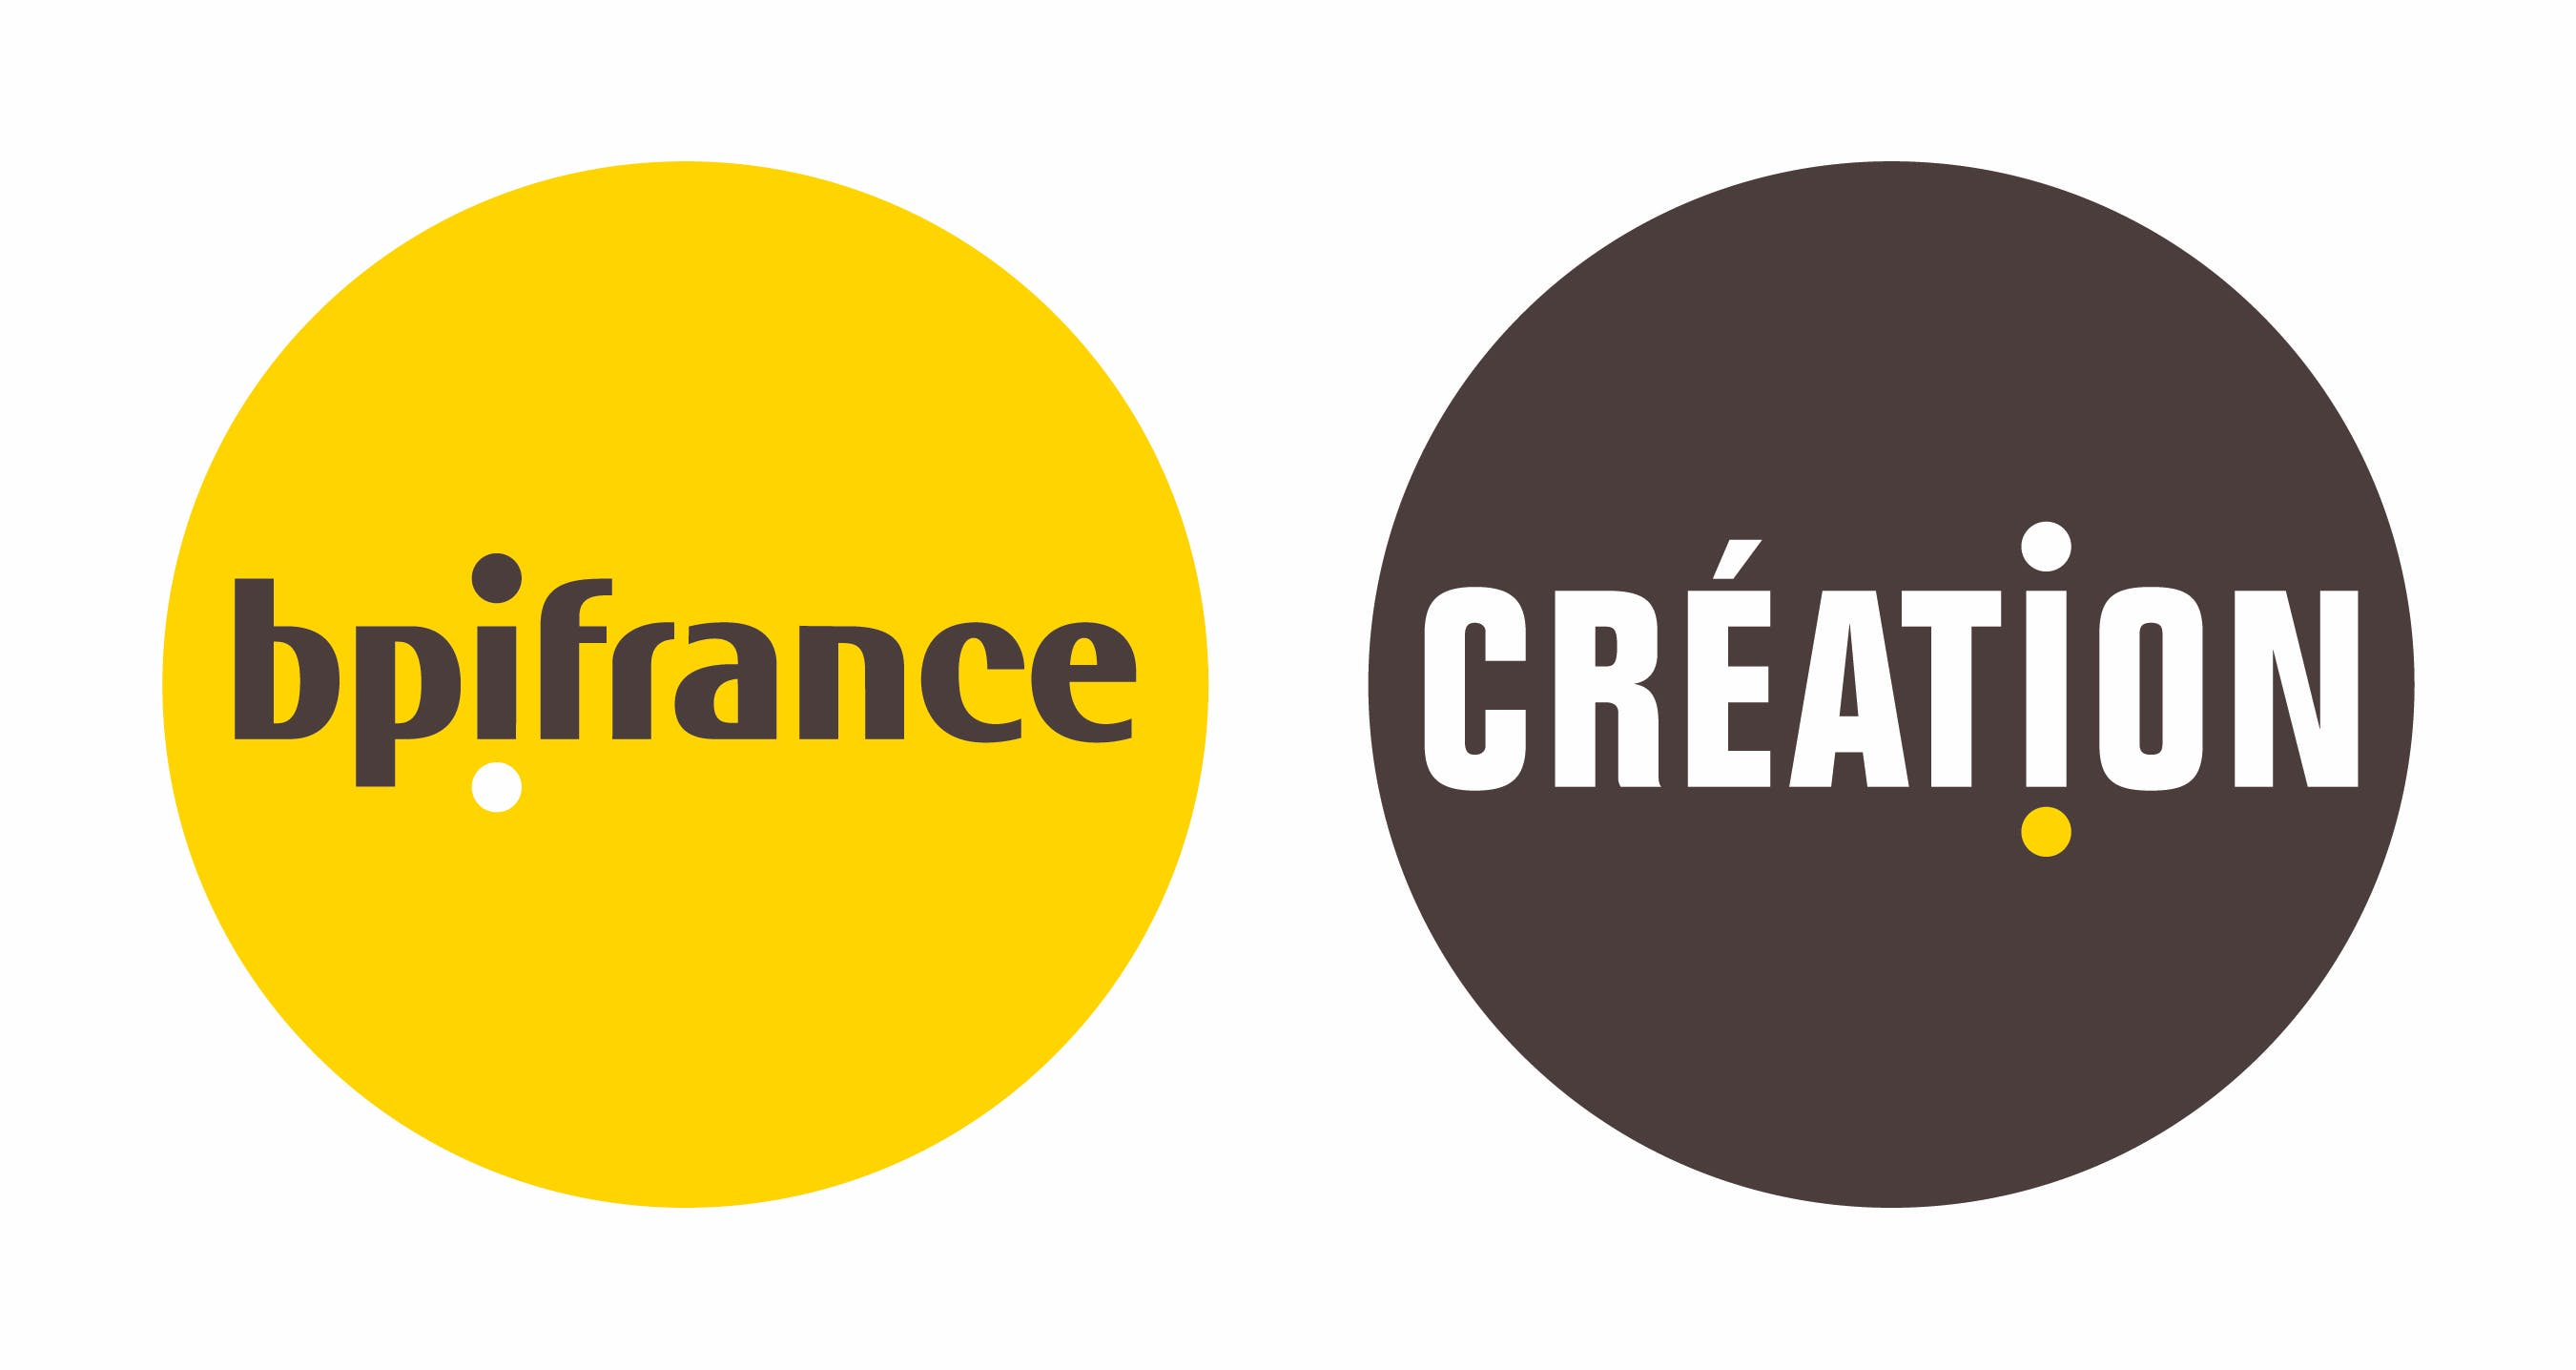 BPIFRANCE CREATION